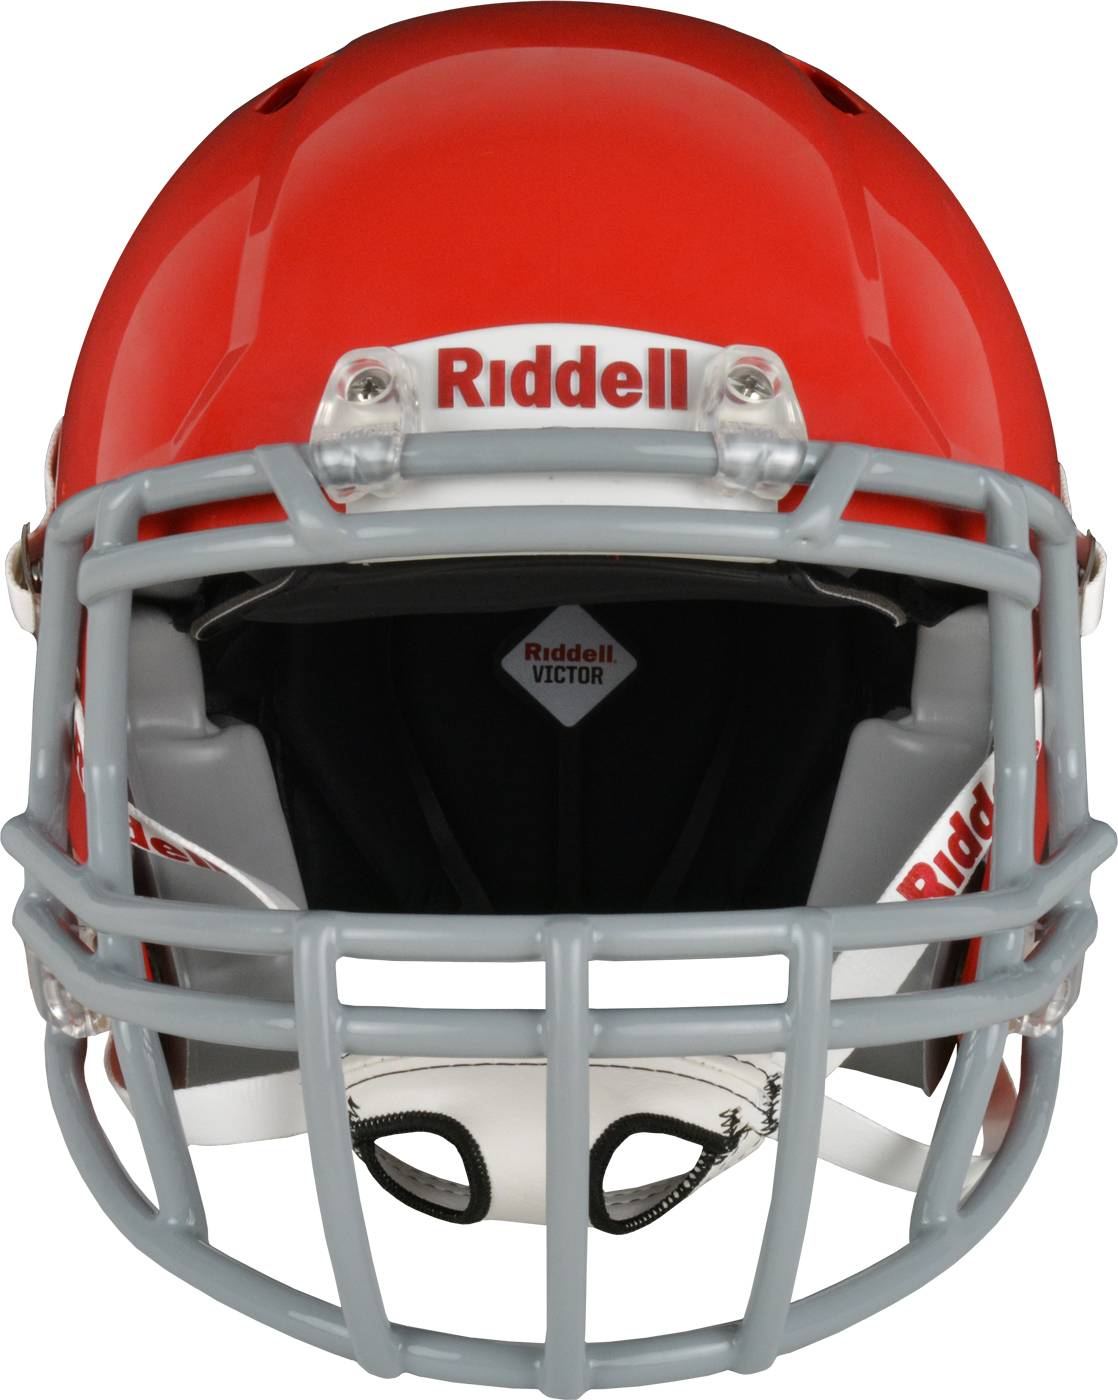 football helmet Product features air xp gameday helmet shell, factory painted with schutt's pro-gloss/.